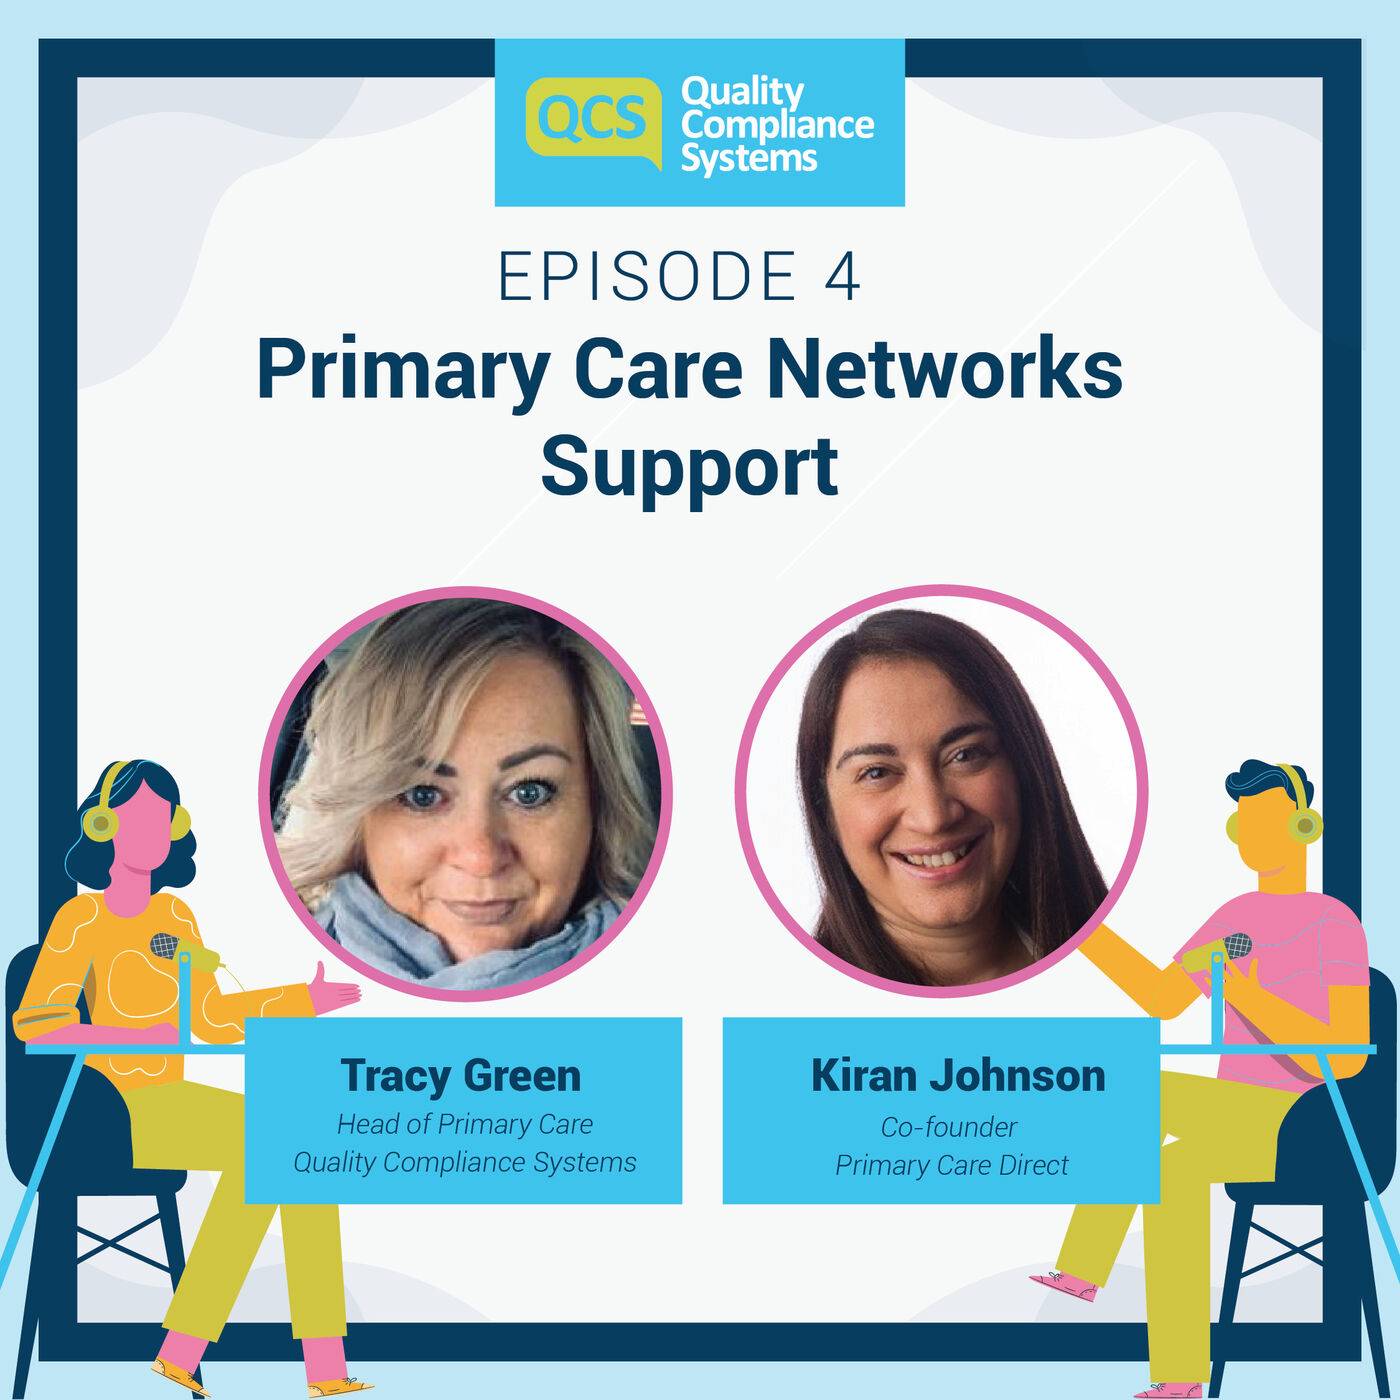 Primary Care Networks Support